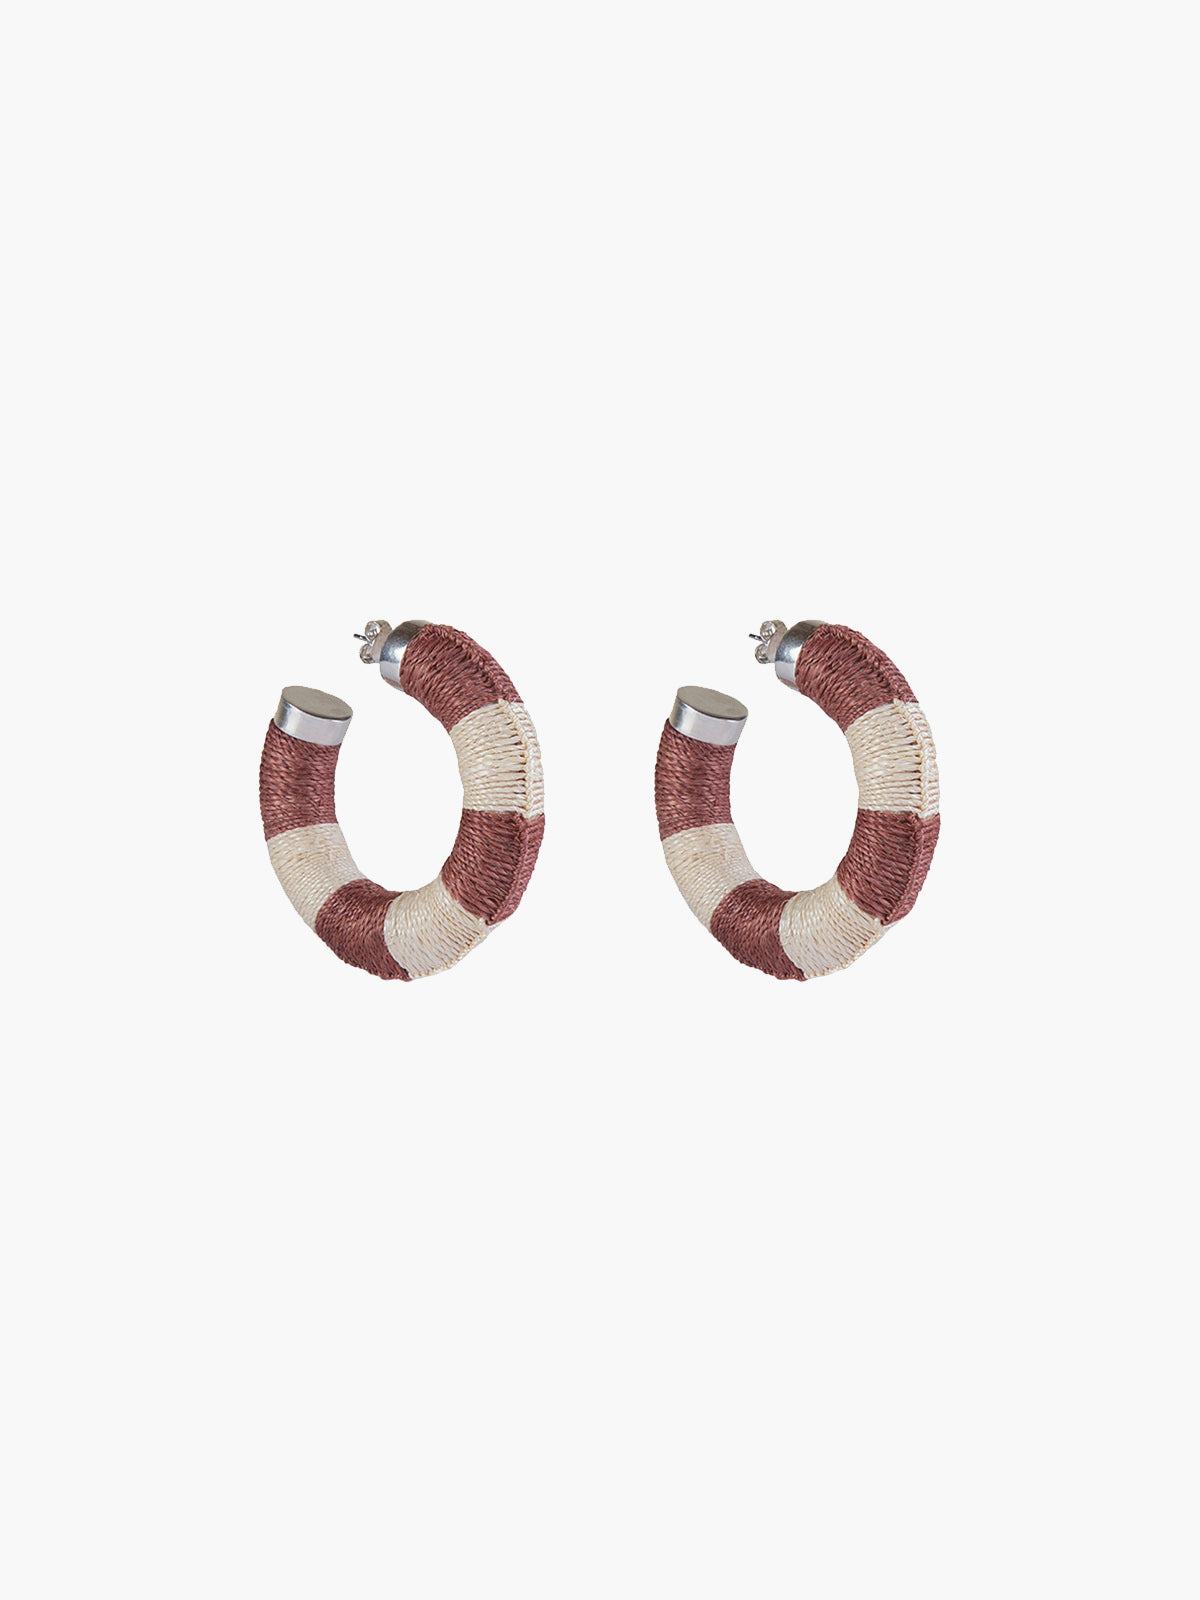 Maguey Hoops | Blush-Natural Maguey Hoops | Blush-Natural